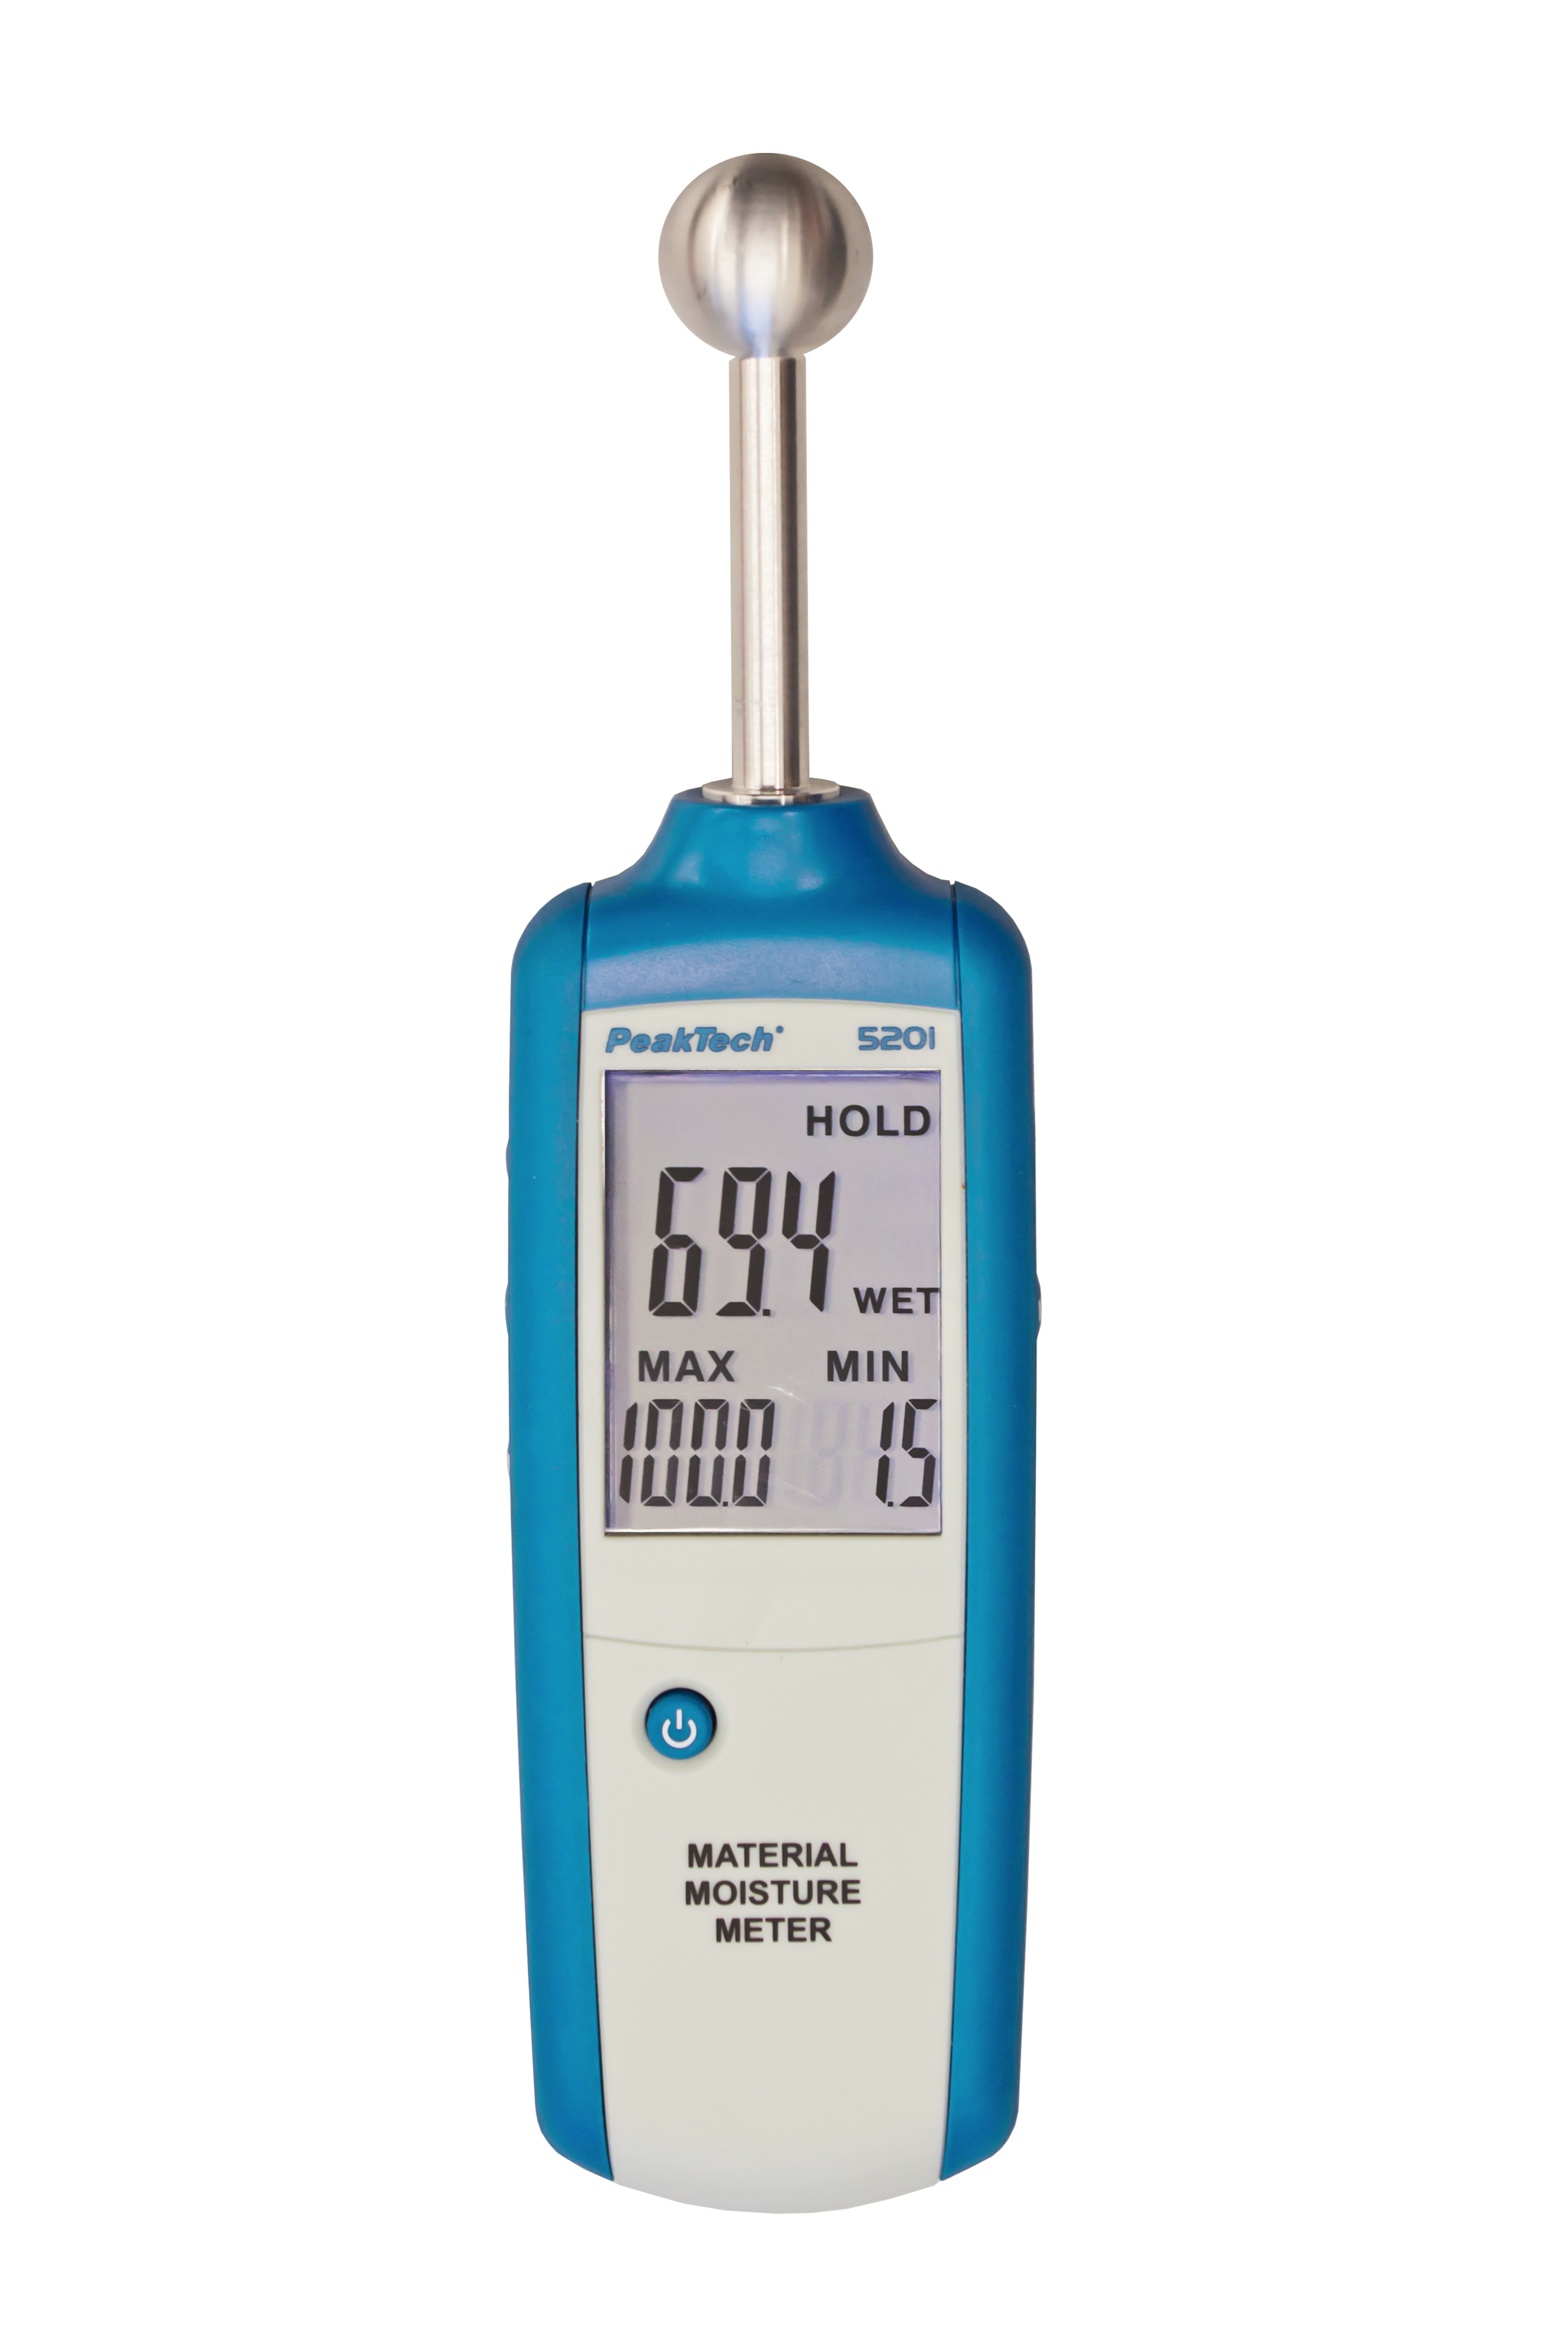 «PeakTech® P 5201» Wood - and Material Moisture Meter